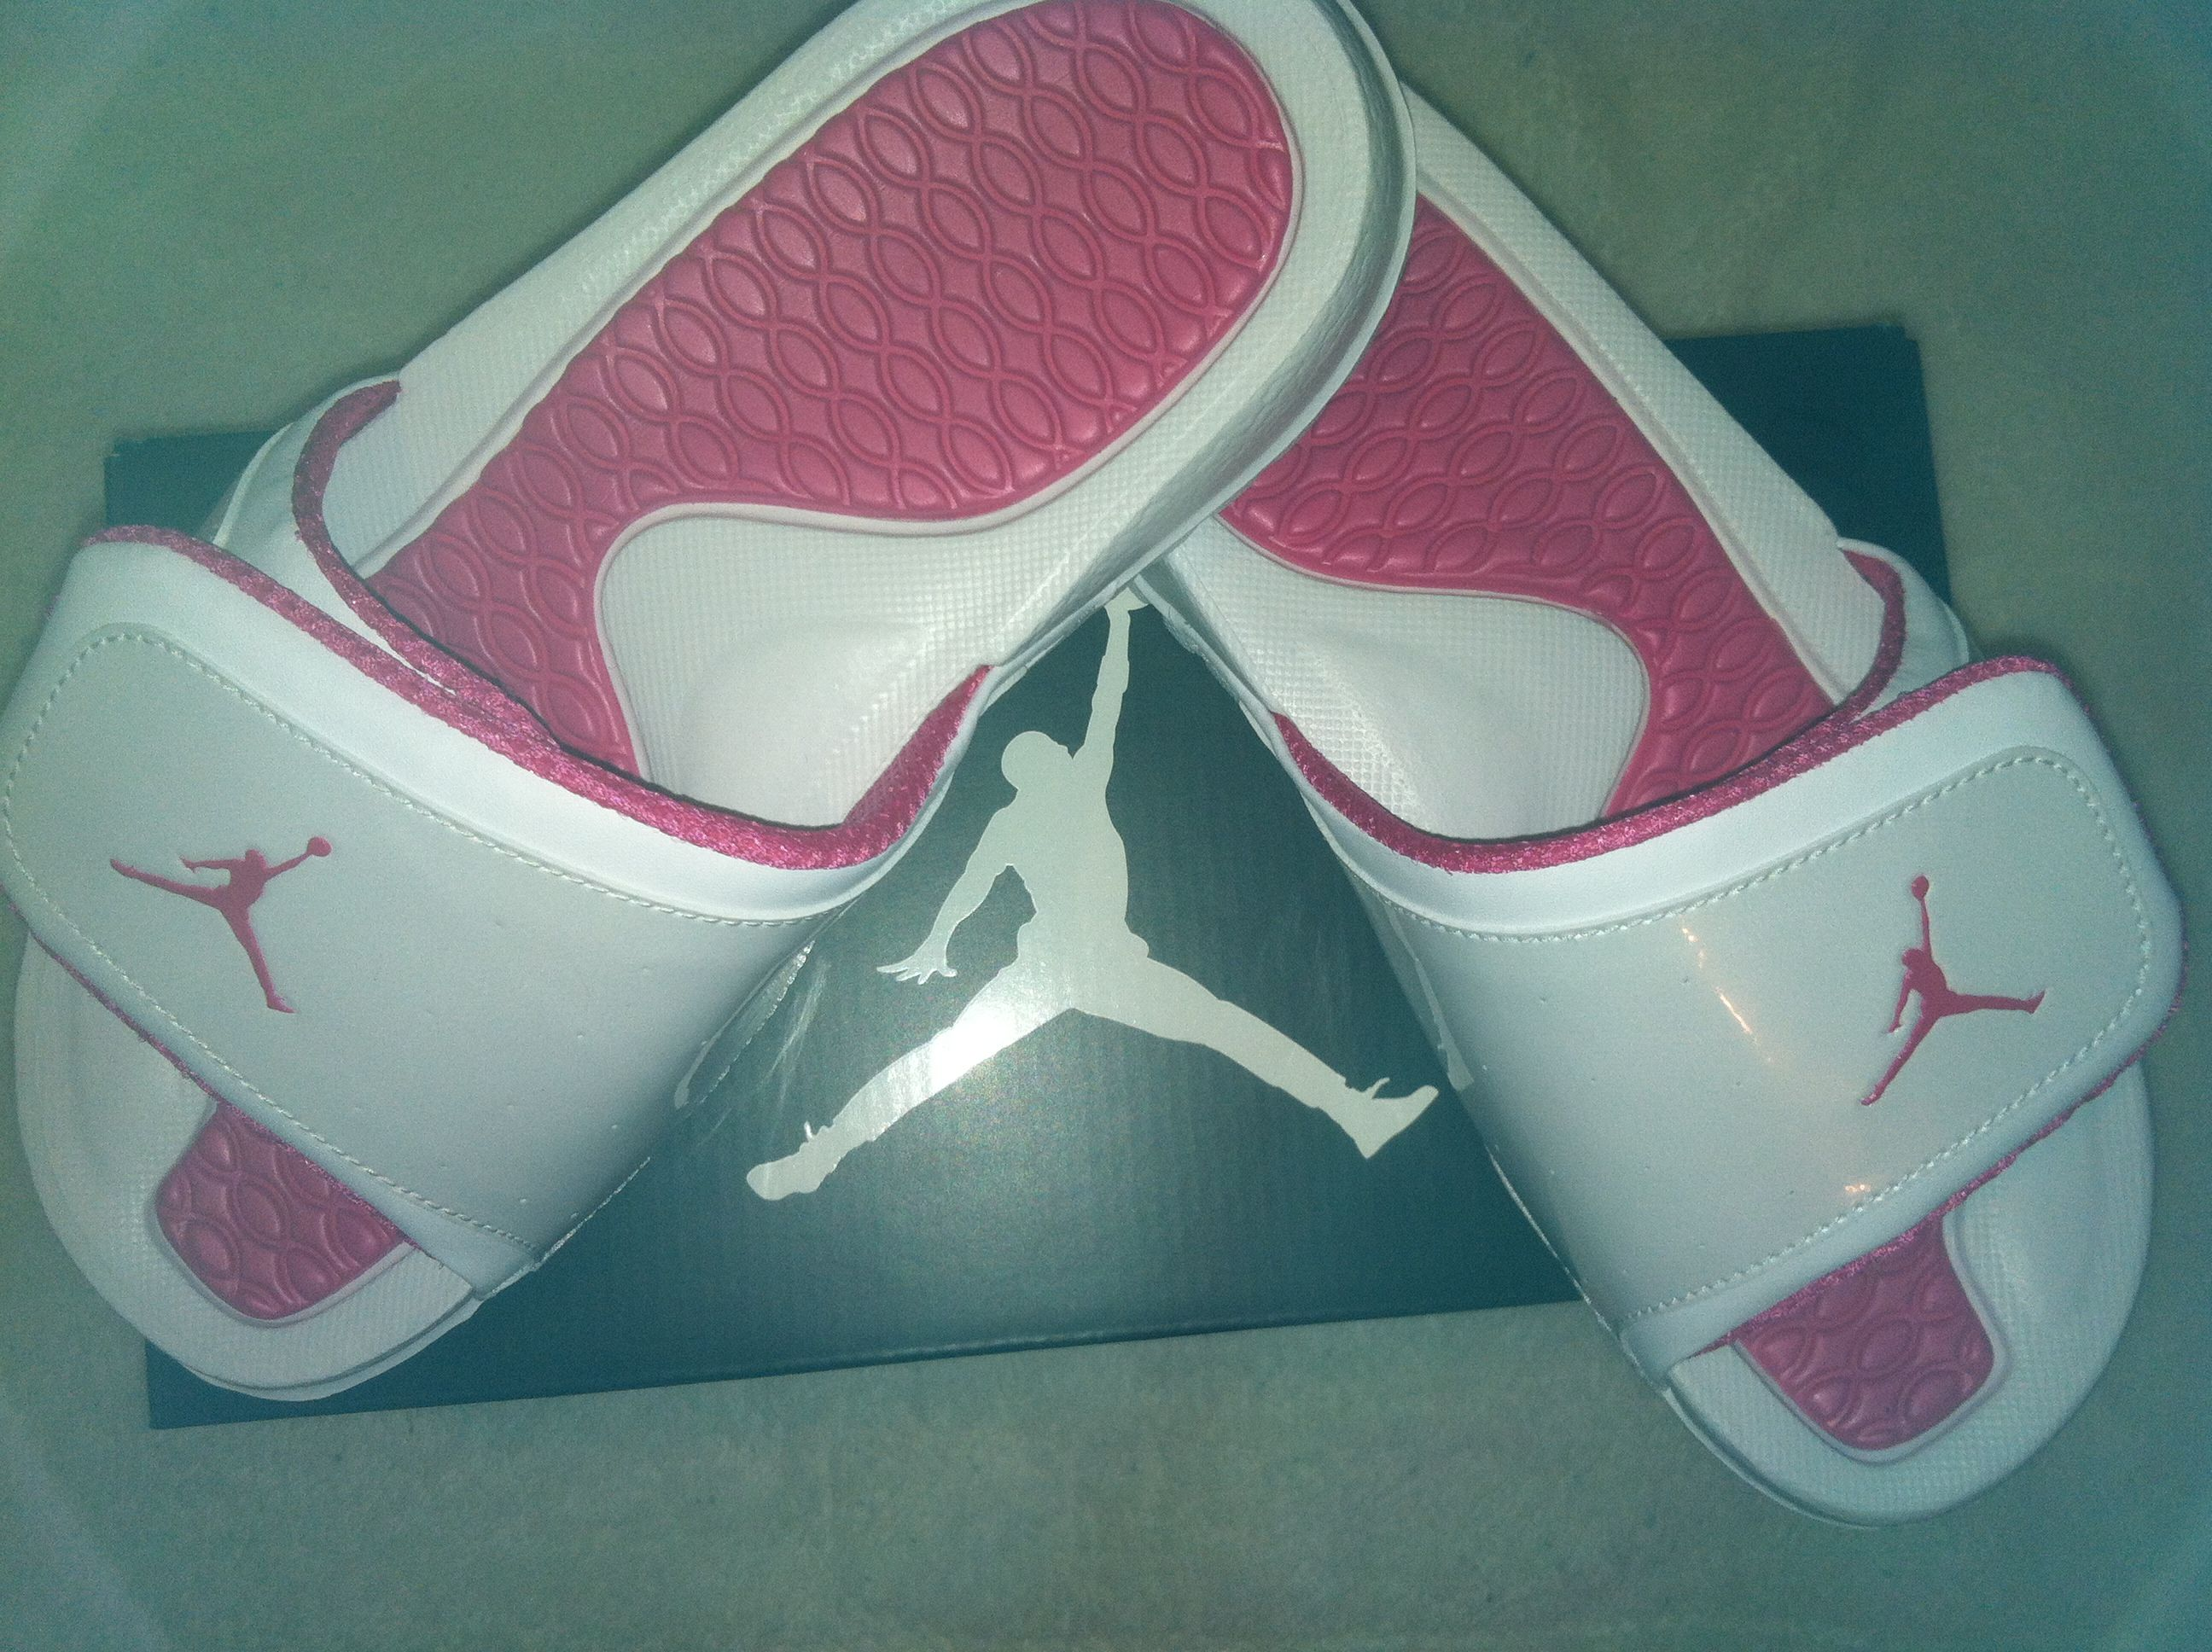 d1ec301ae92a Pink   White Jordan Sandals. Had these too until some crackhead stole em...  Right long with my black pink ones